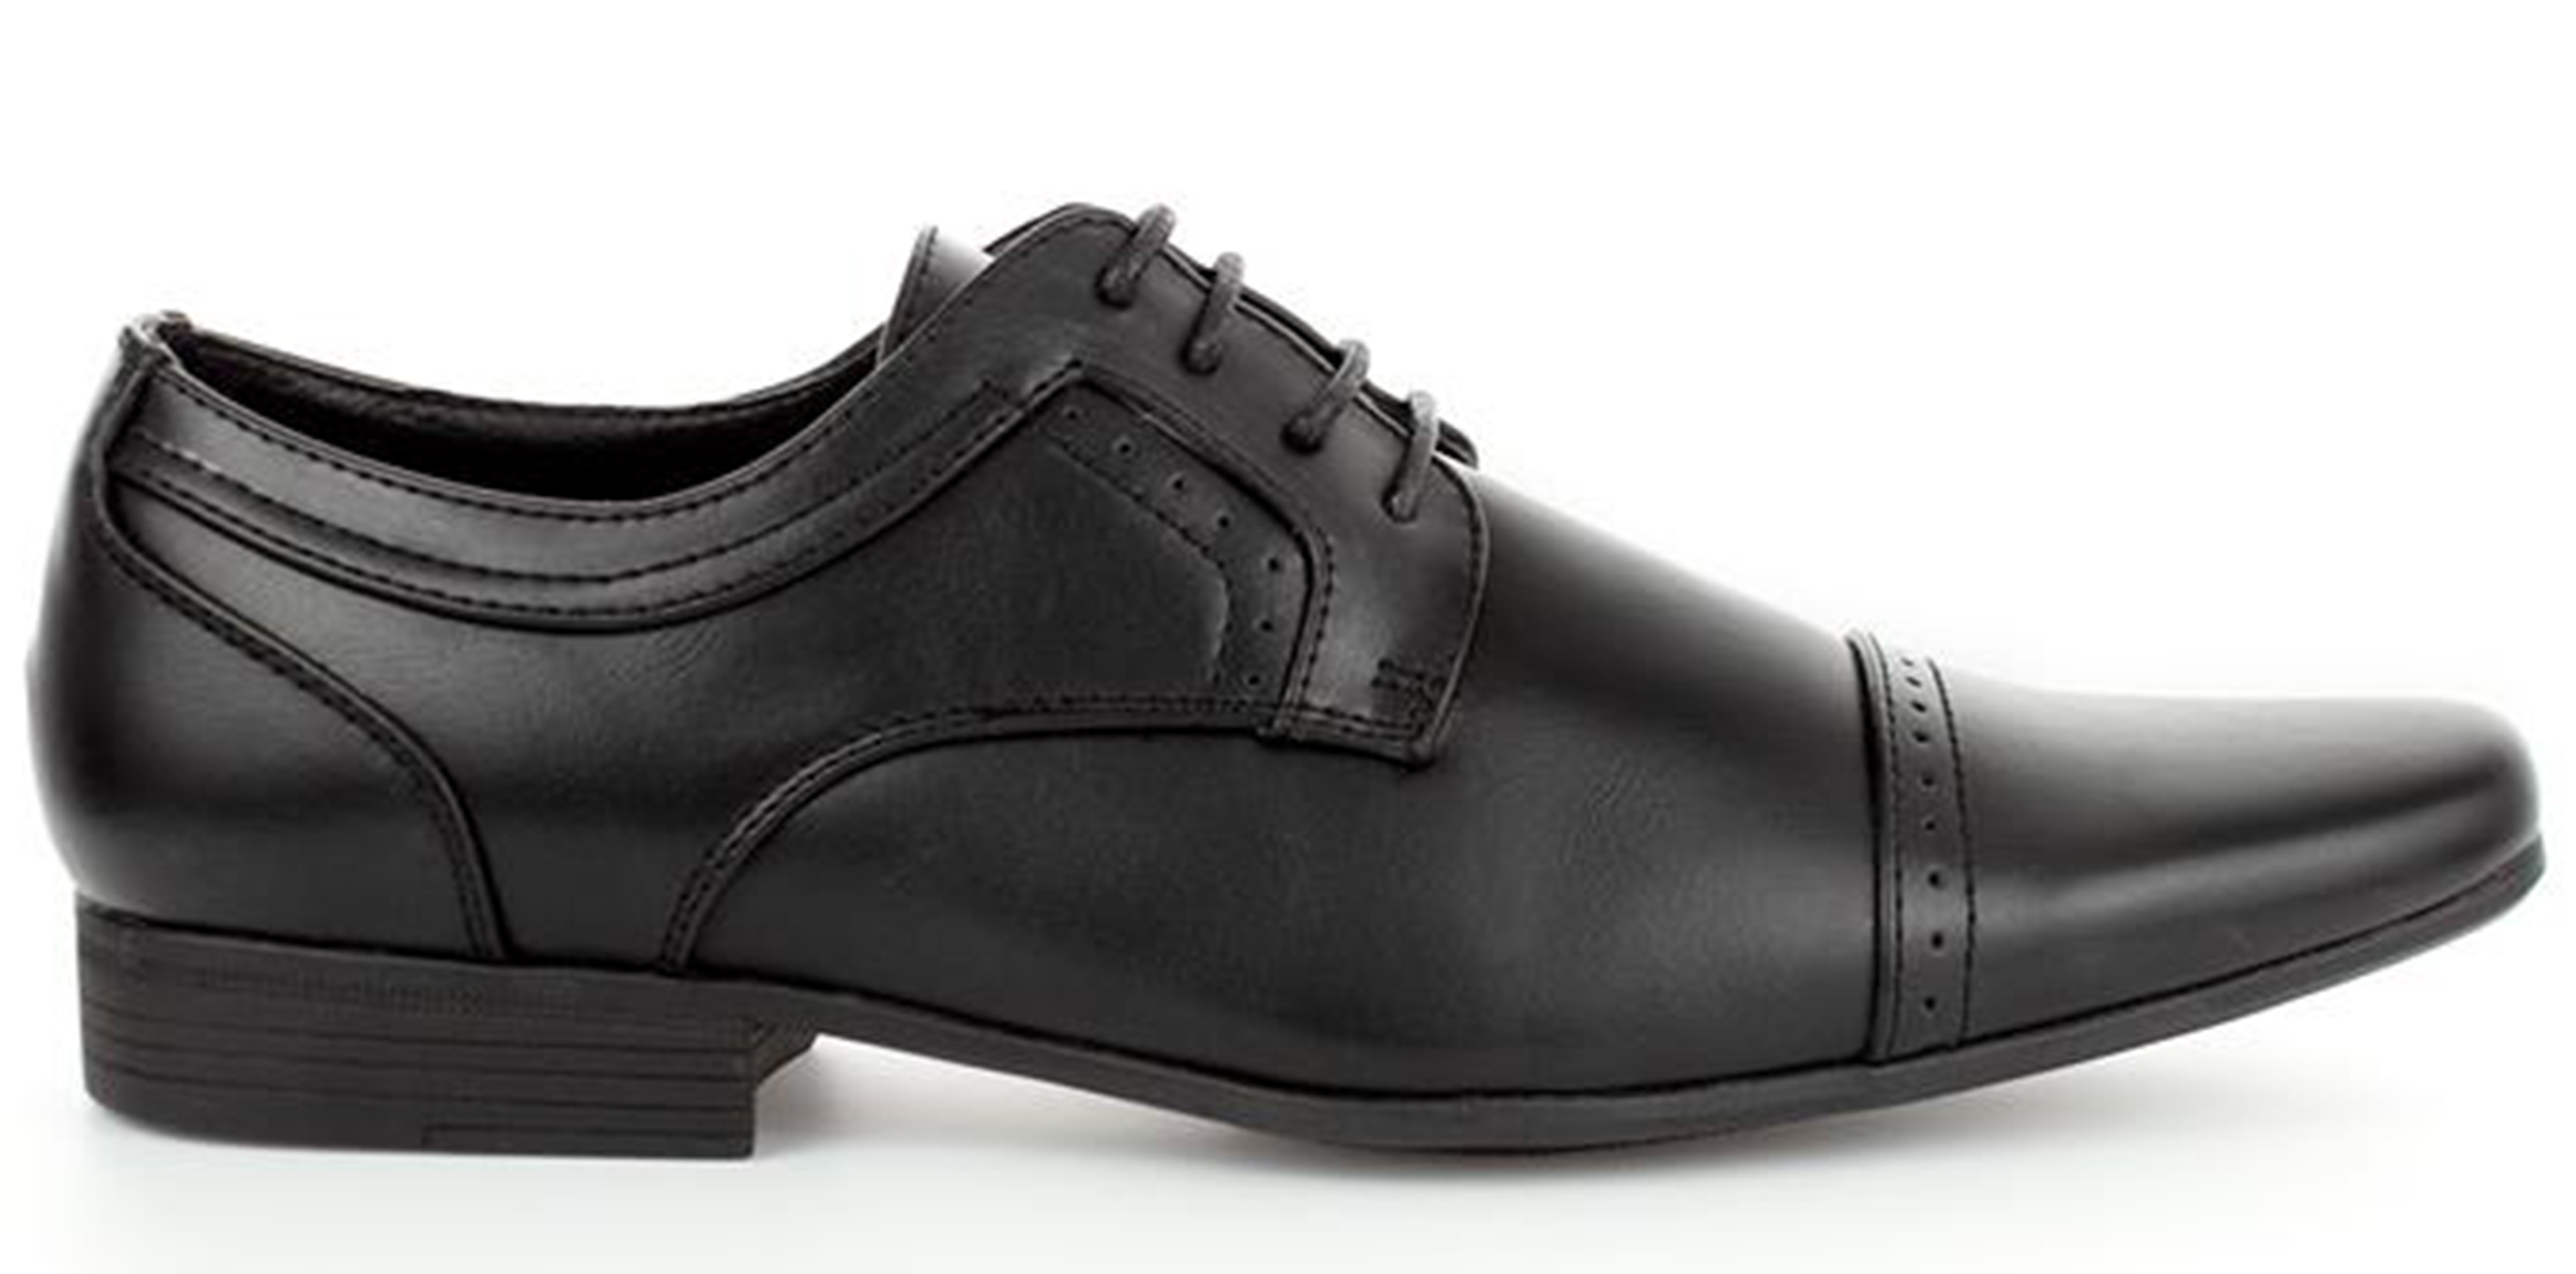 MENS-SMART-BLACK-LACE-UP-LOAFERS-MOCCASINS-WORK-WEDDING-SHOES-SIZES-6-11 thumbnail 6